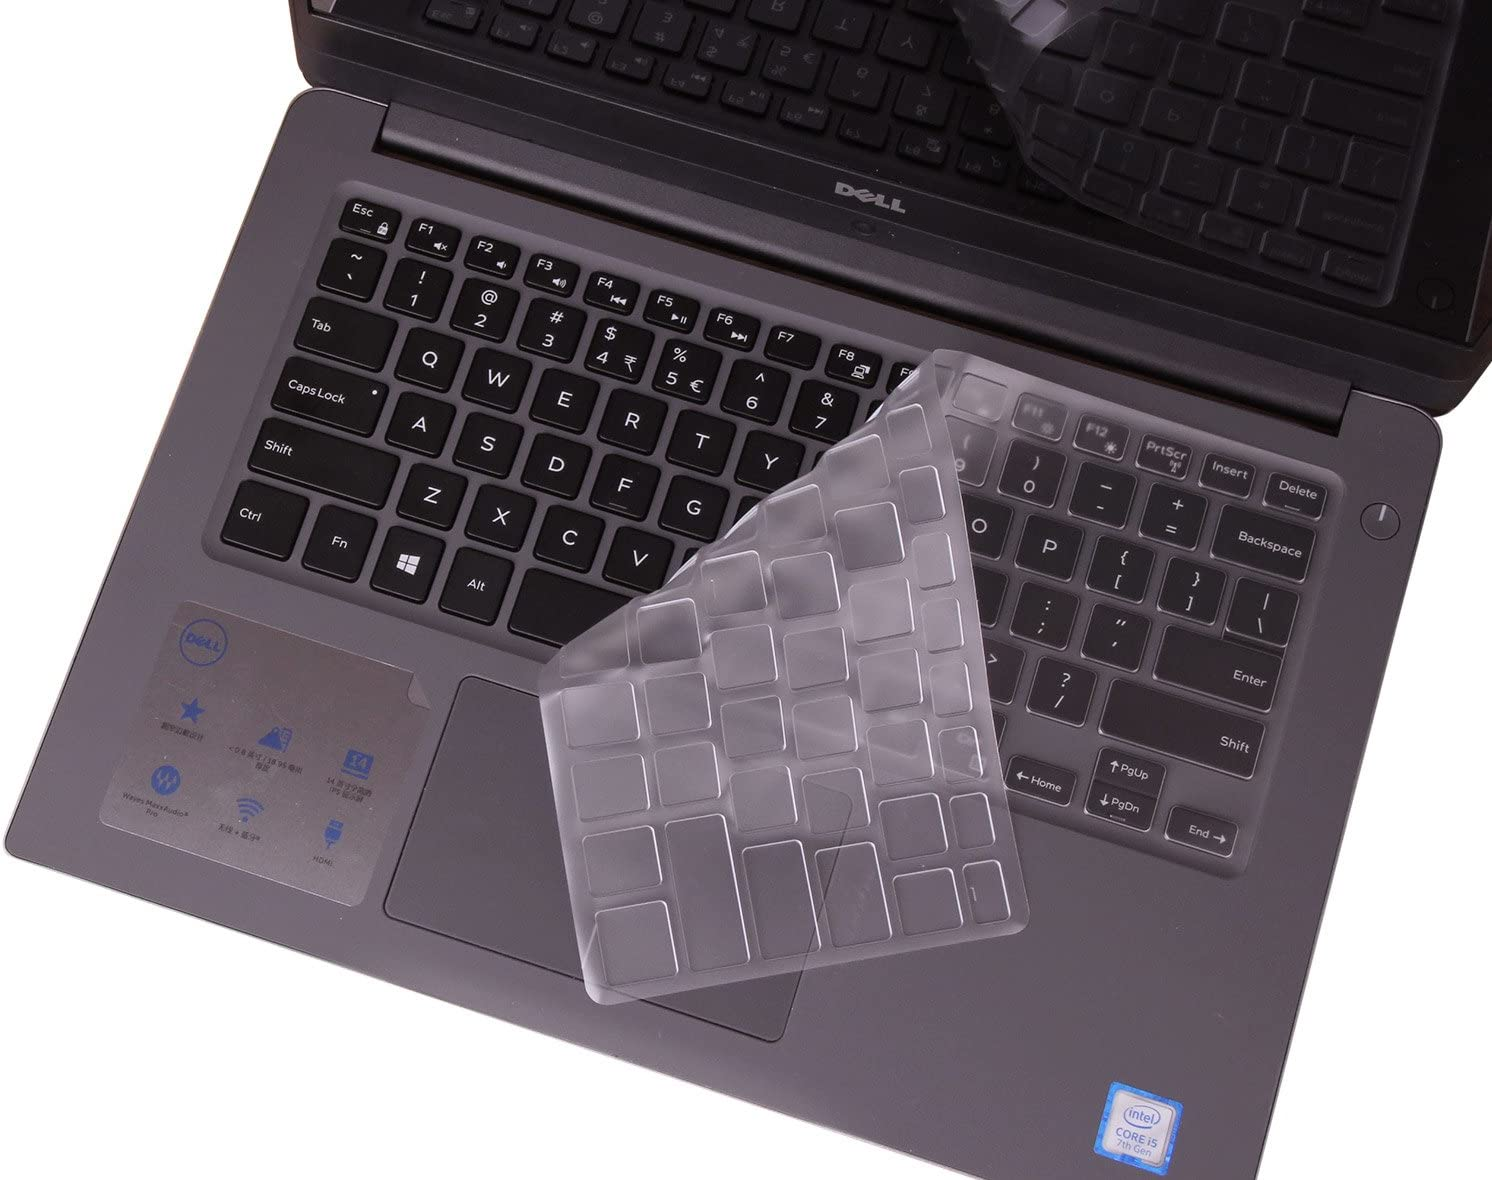 Keyboard Cover for Dell Inspiron 5000 14 5481 5482 5485 5491 2-in-1 14 Inch/Inspiron 13 i5368 i5378 i5379 5585 7373 7375 7368 7378 7380 7386/ Inspiron i5568 i5578 7573 7570 7569 7579 7580 7586, TPU